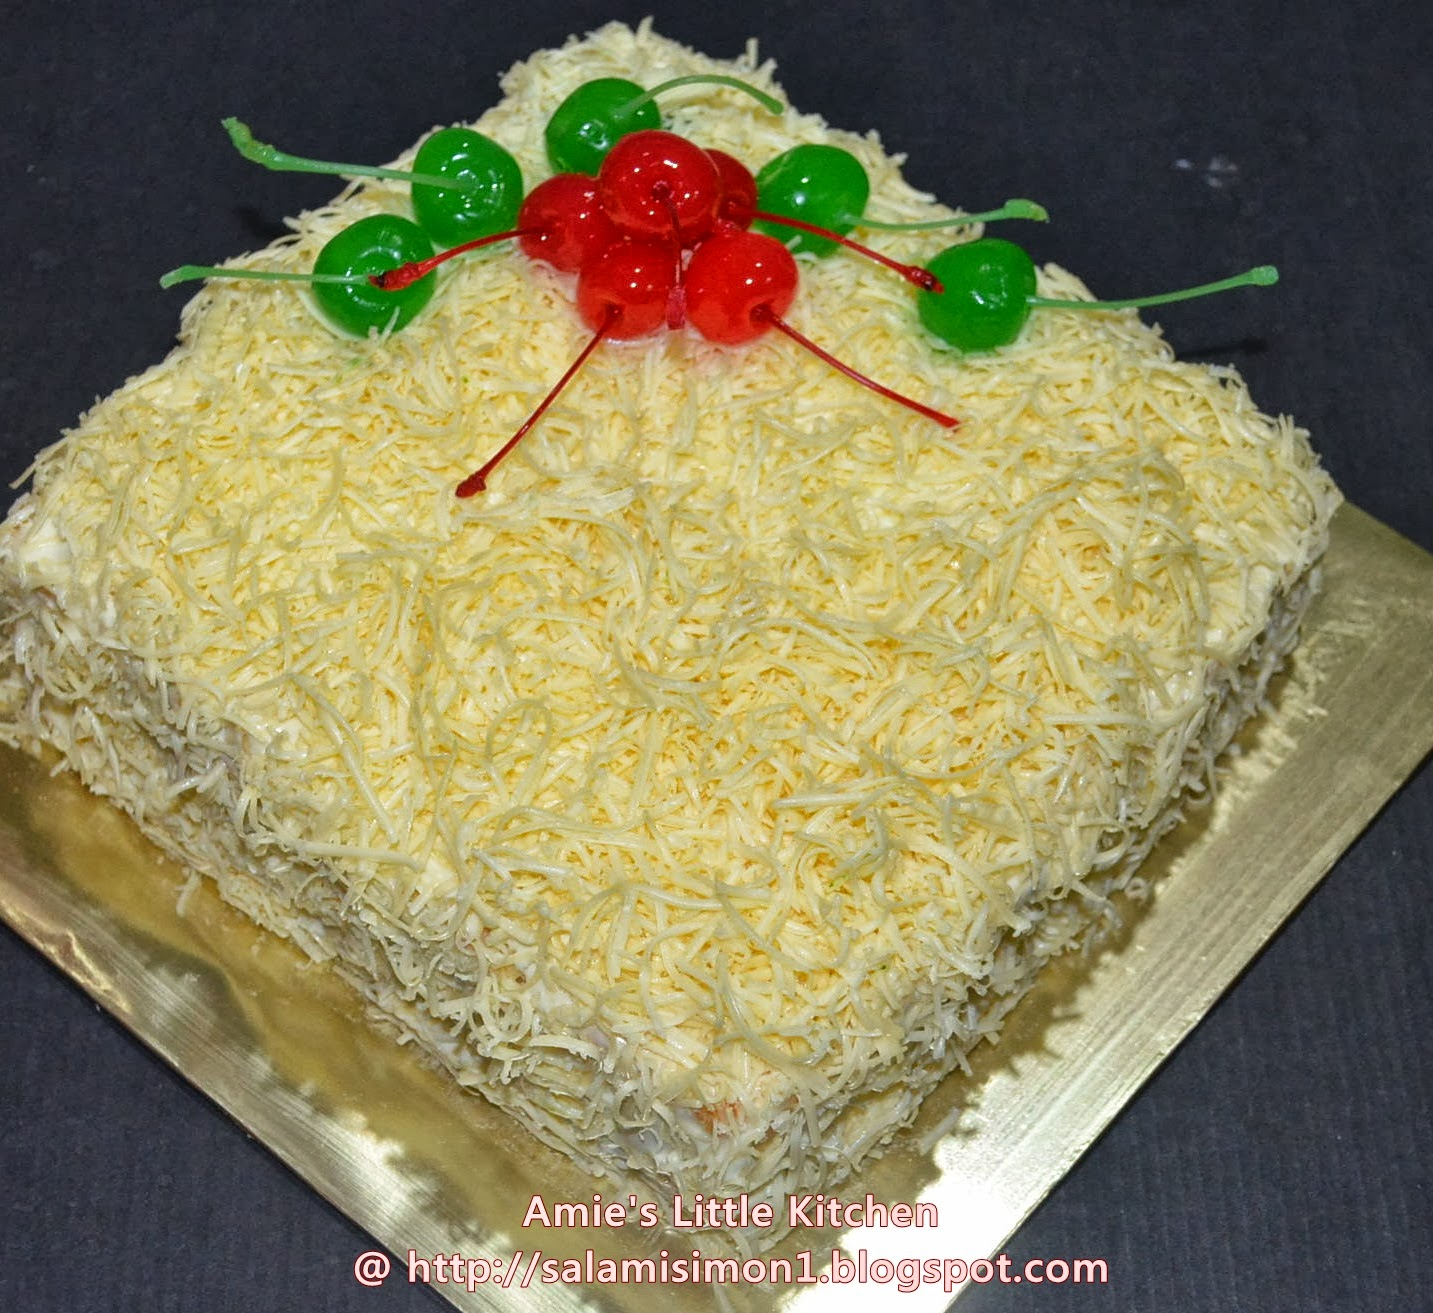 AMIE'S LITTLE KITCHEN: Resepi Snow Cheese Cake